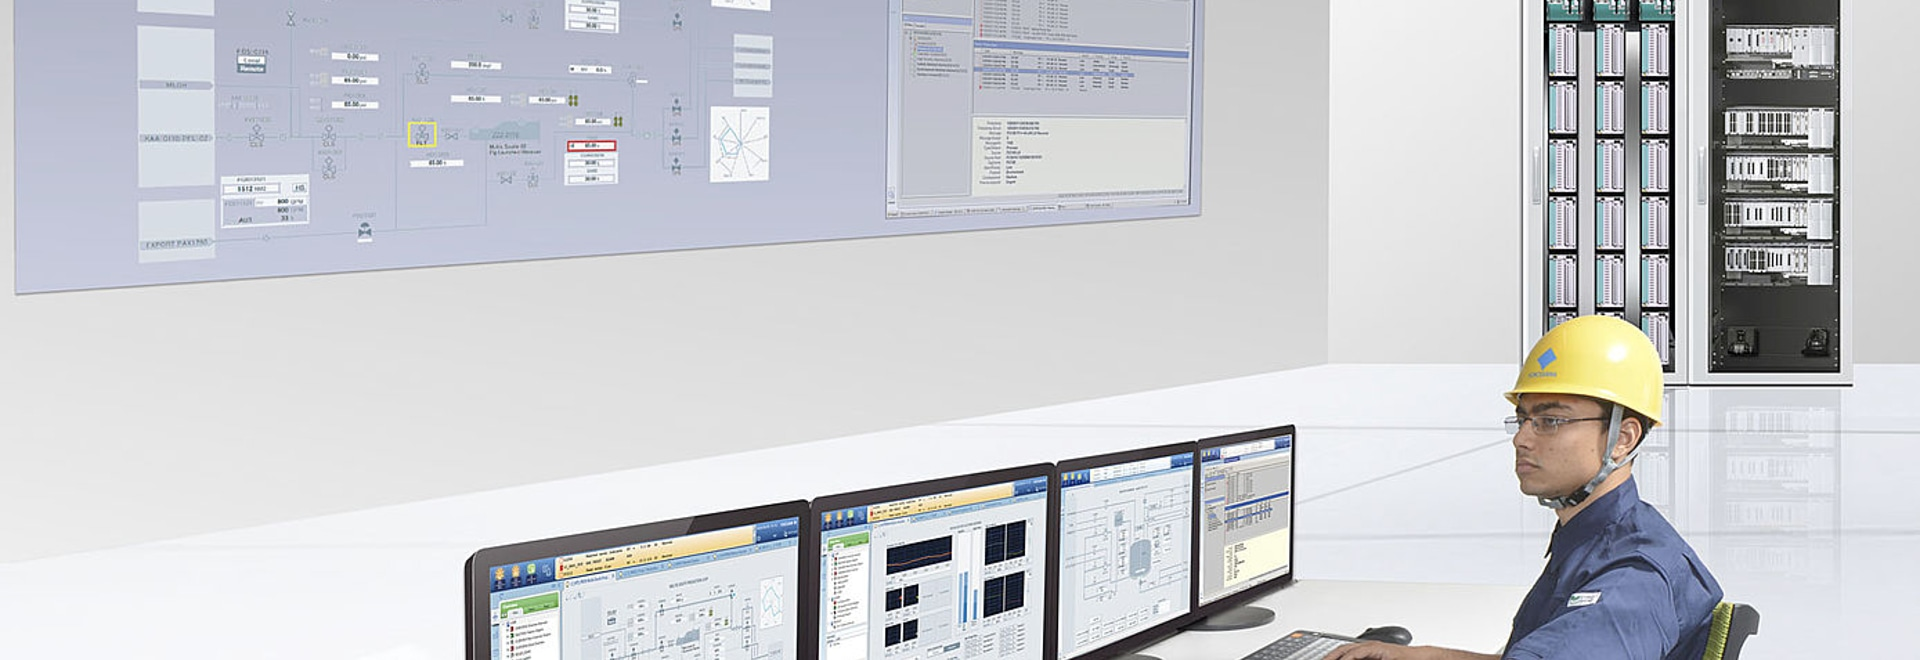 Yokogawa releases CENTUM(R) VP R6.02 integrated production control system